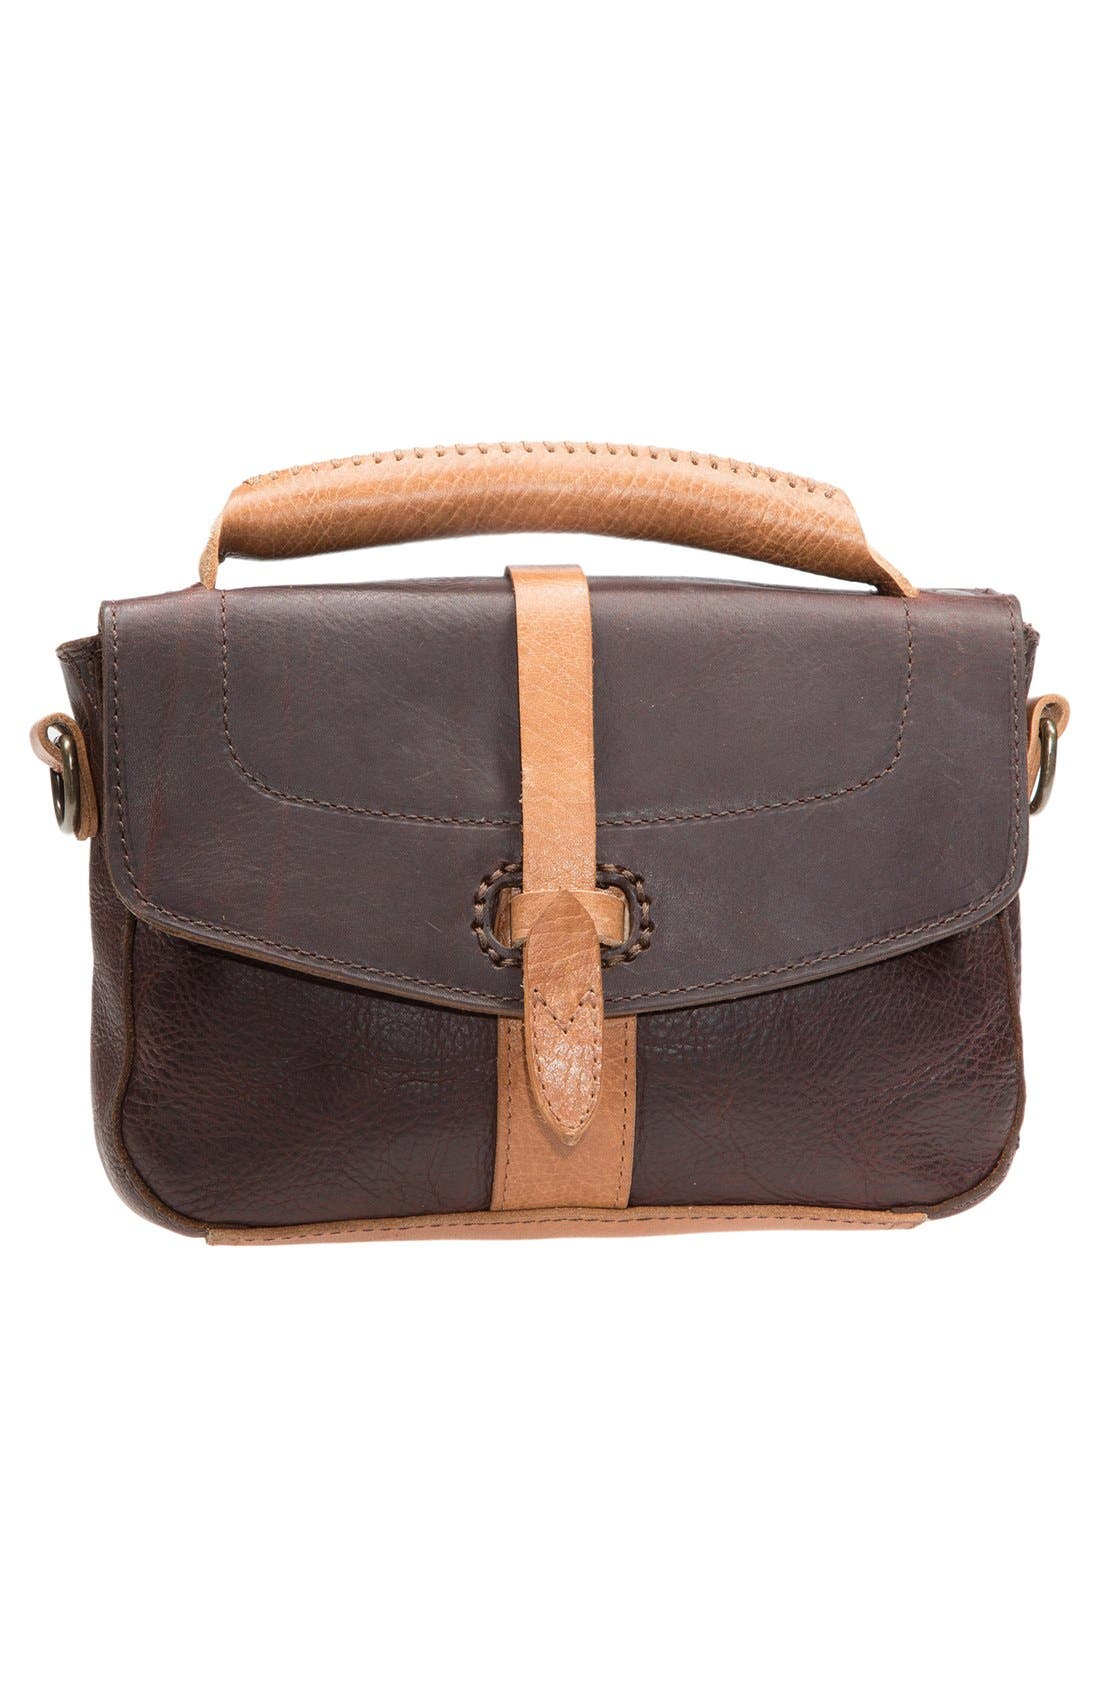 Alternate Image 1 Selected - Will Leather Goods 'Athena' Leather Crossbody Bag